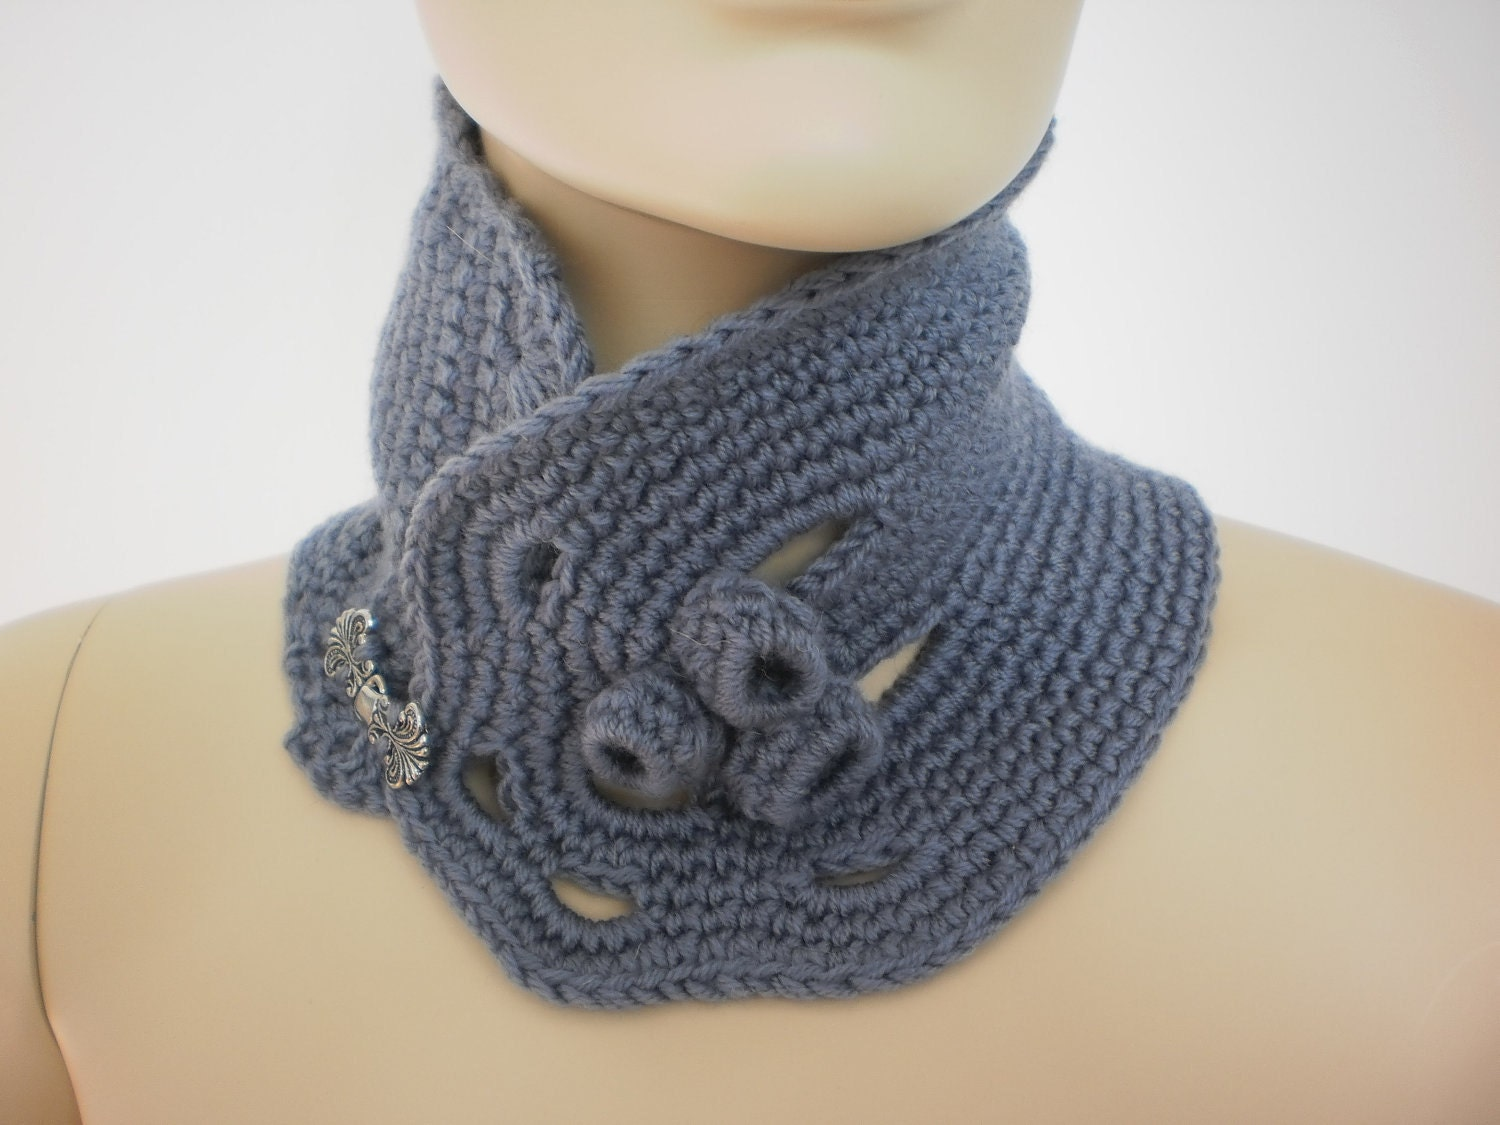 Crochet Patterns Neck Scarves : crochet grey scarf neck warmer cowl scarf from levintovich Cowl Neck ...